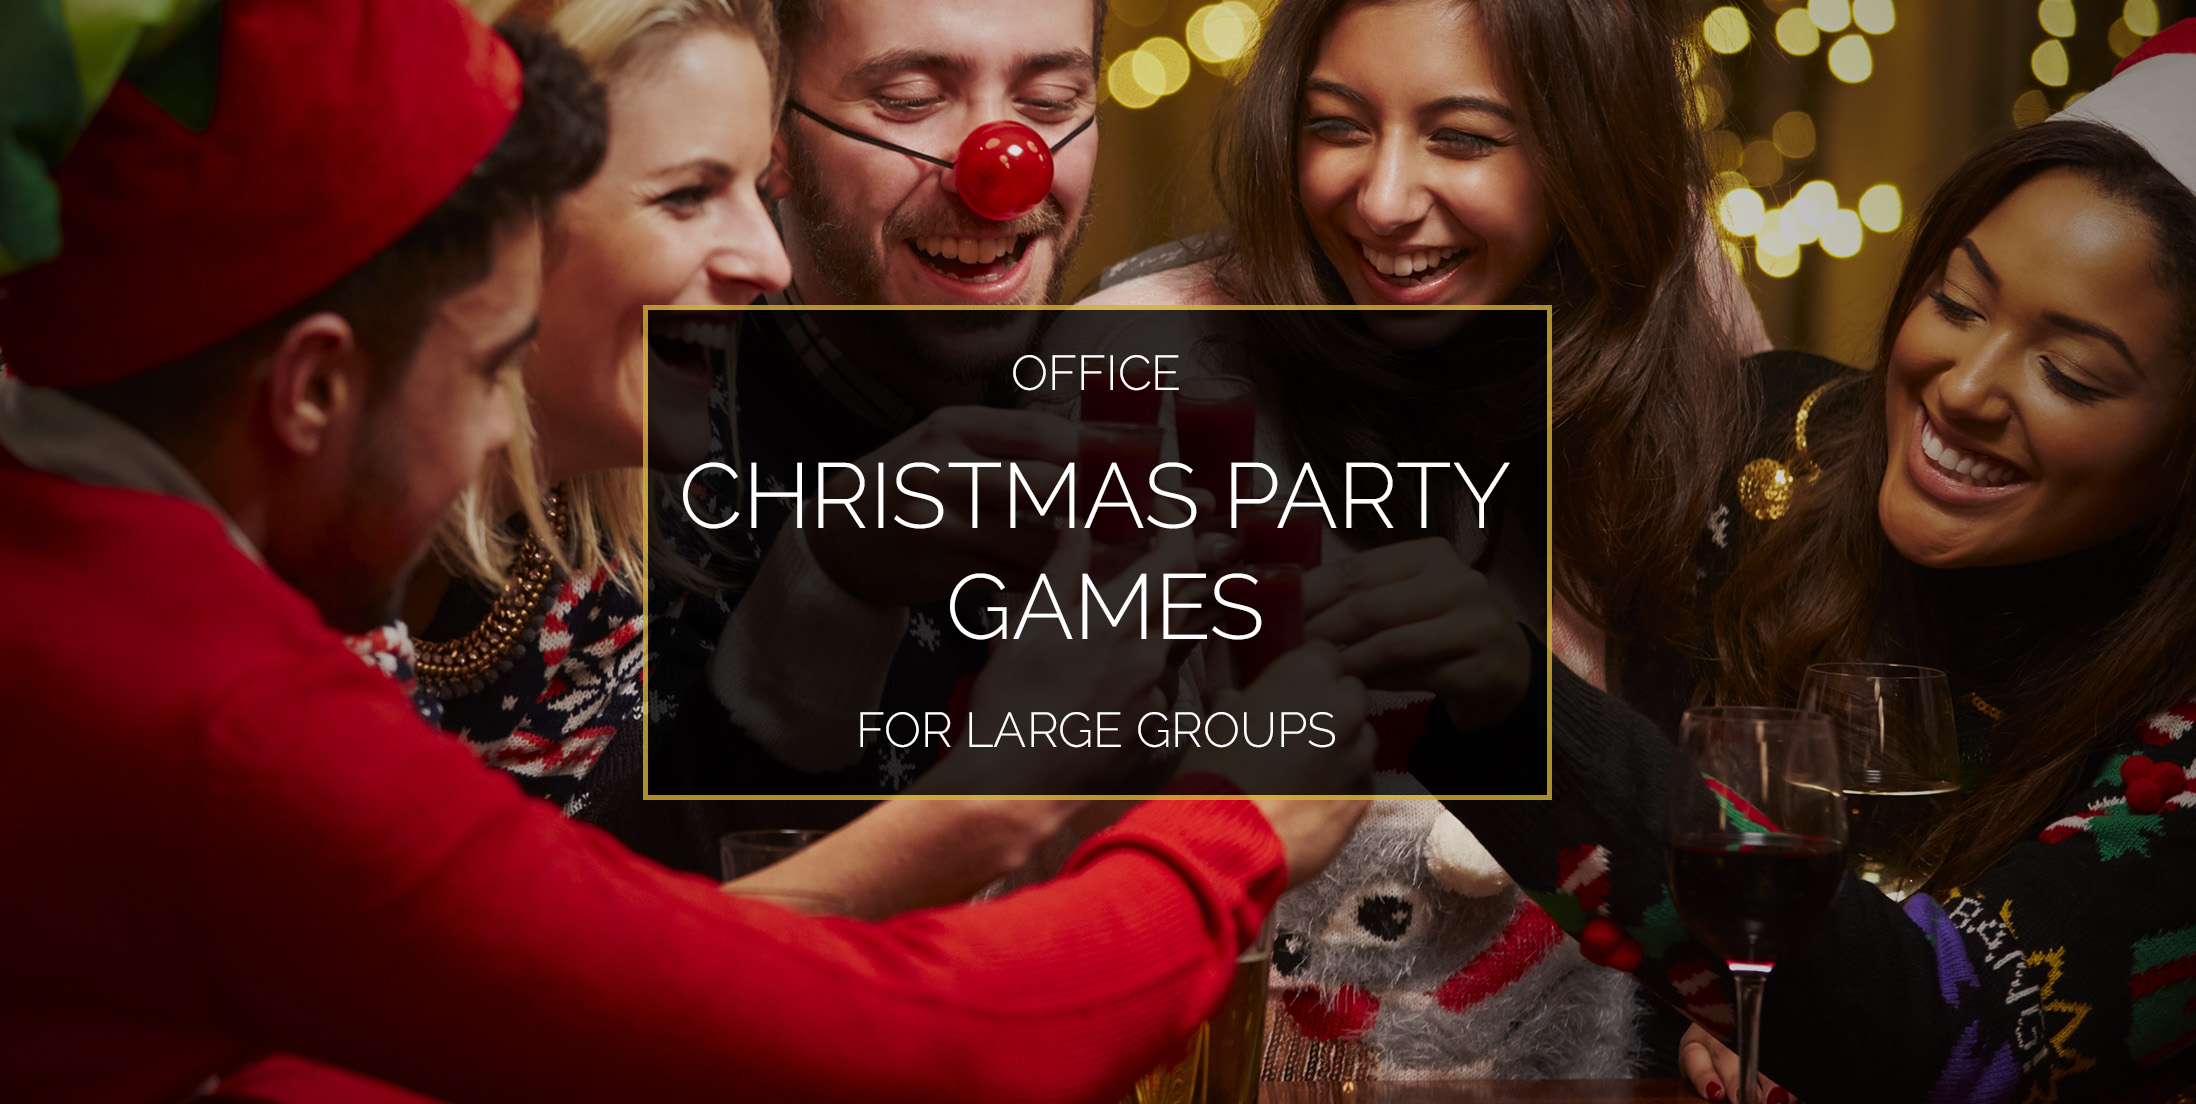 Office Christmas Party Games for Large Groups